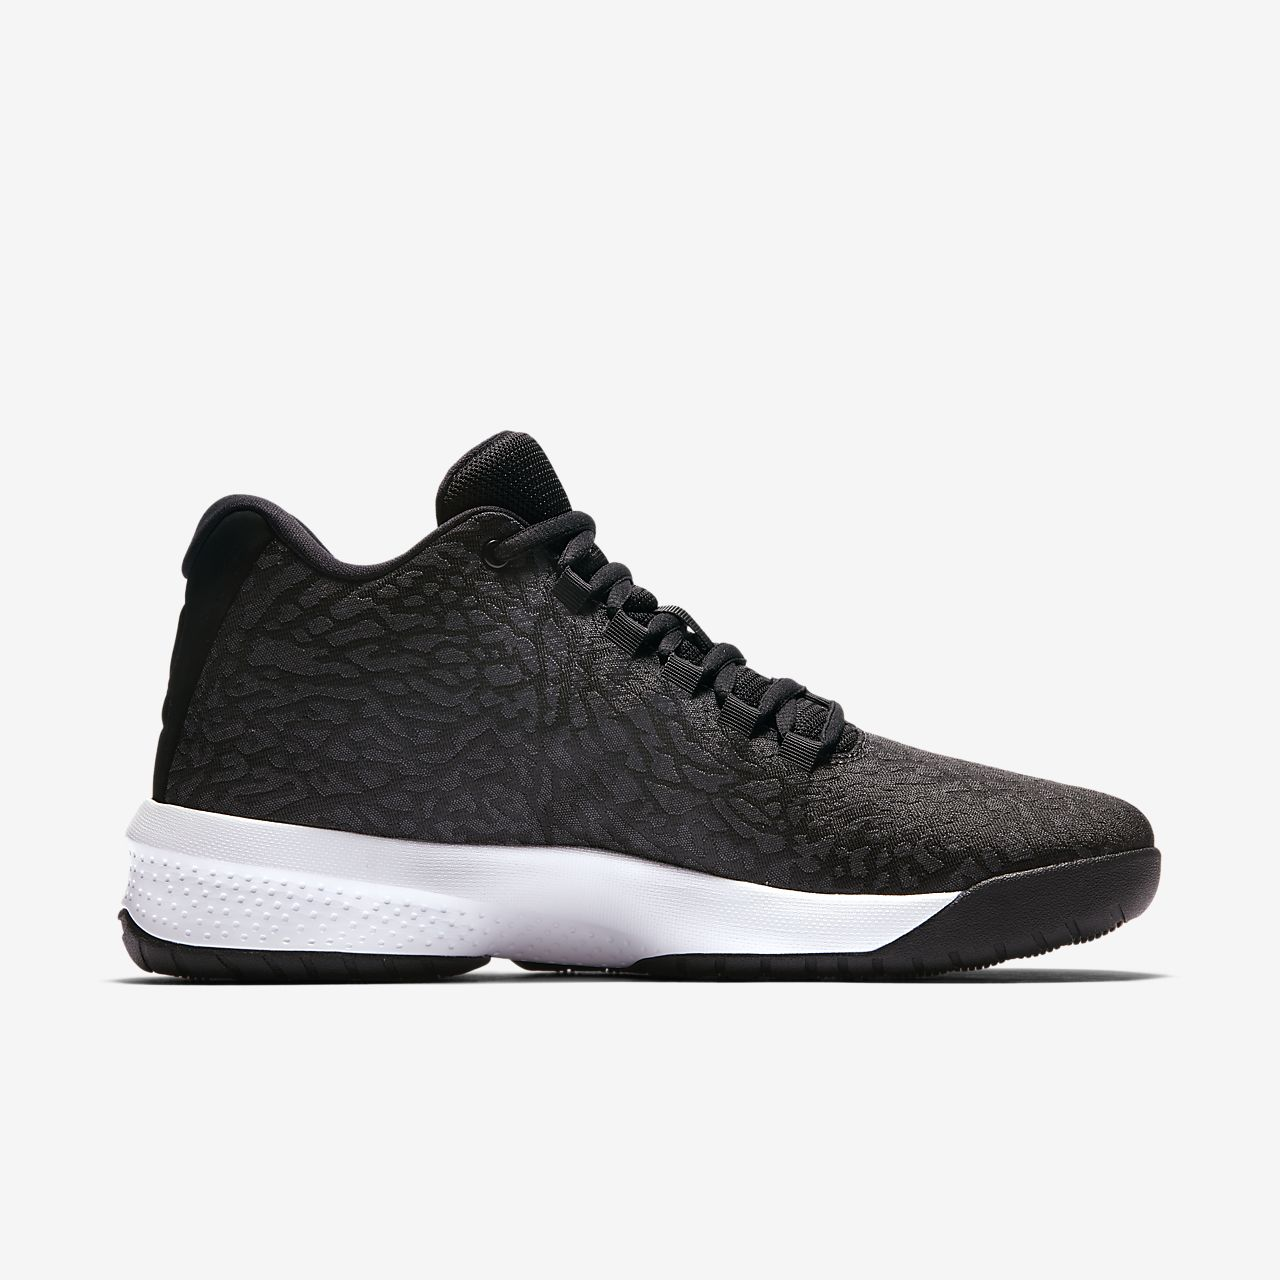 ... Jordan B. Fly Men's Basketball Shoe